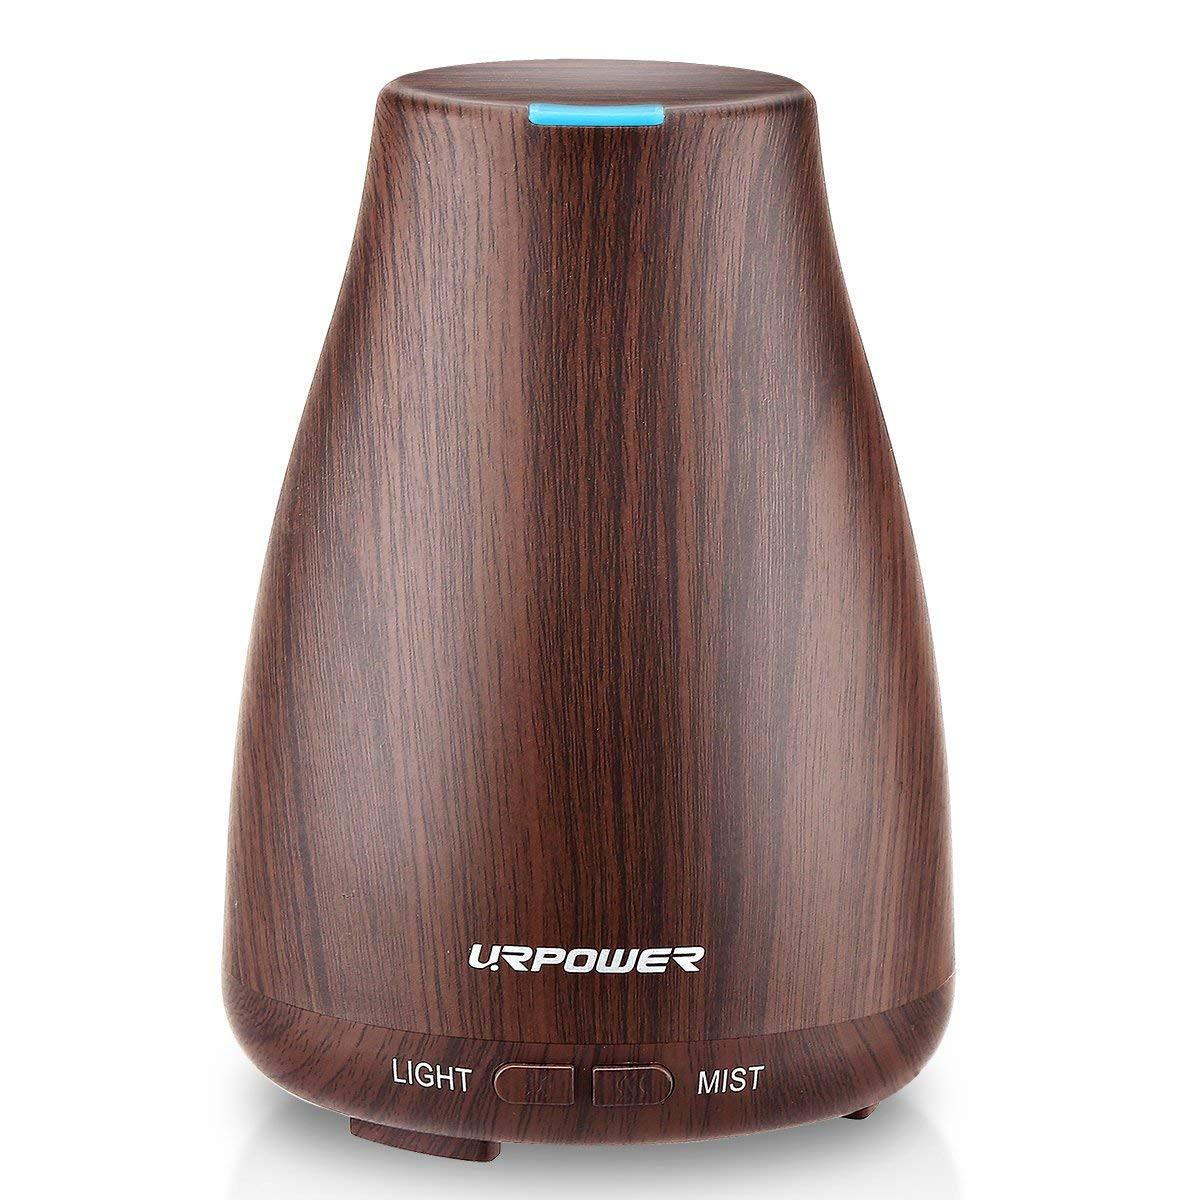 3 Foot Floor Vase Of Amazon Com Urpower 2nd Version Essential Oil Diffuser Aroma with Regard to Amazon Com Urpower 2nd Version Essential Oil Diffuser Aroma Essential Oil Cool Mist Humidifier with Adjustable Mist Mode Waterless Auto Shut Off and 7